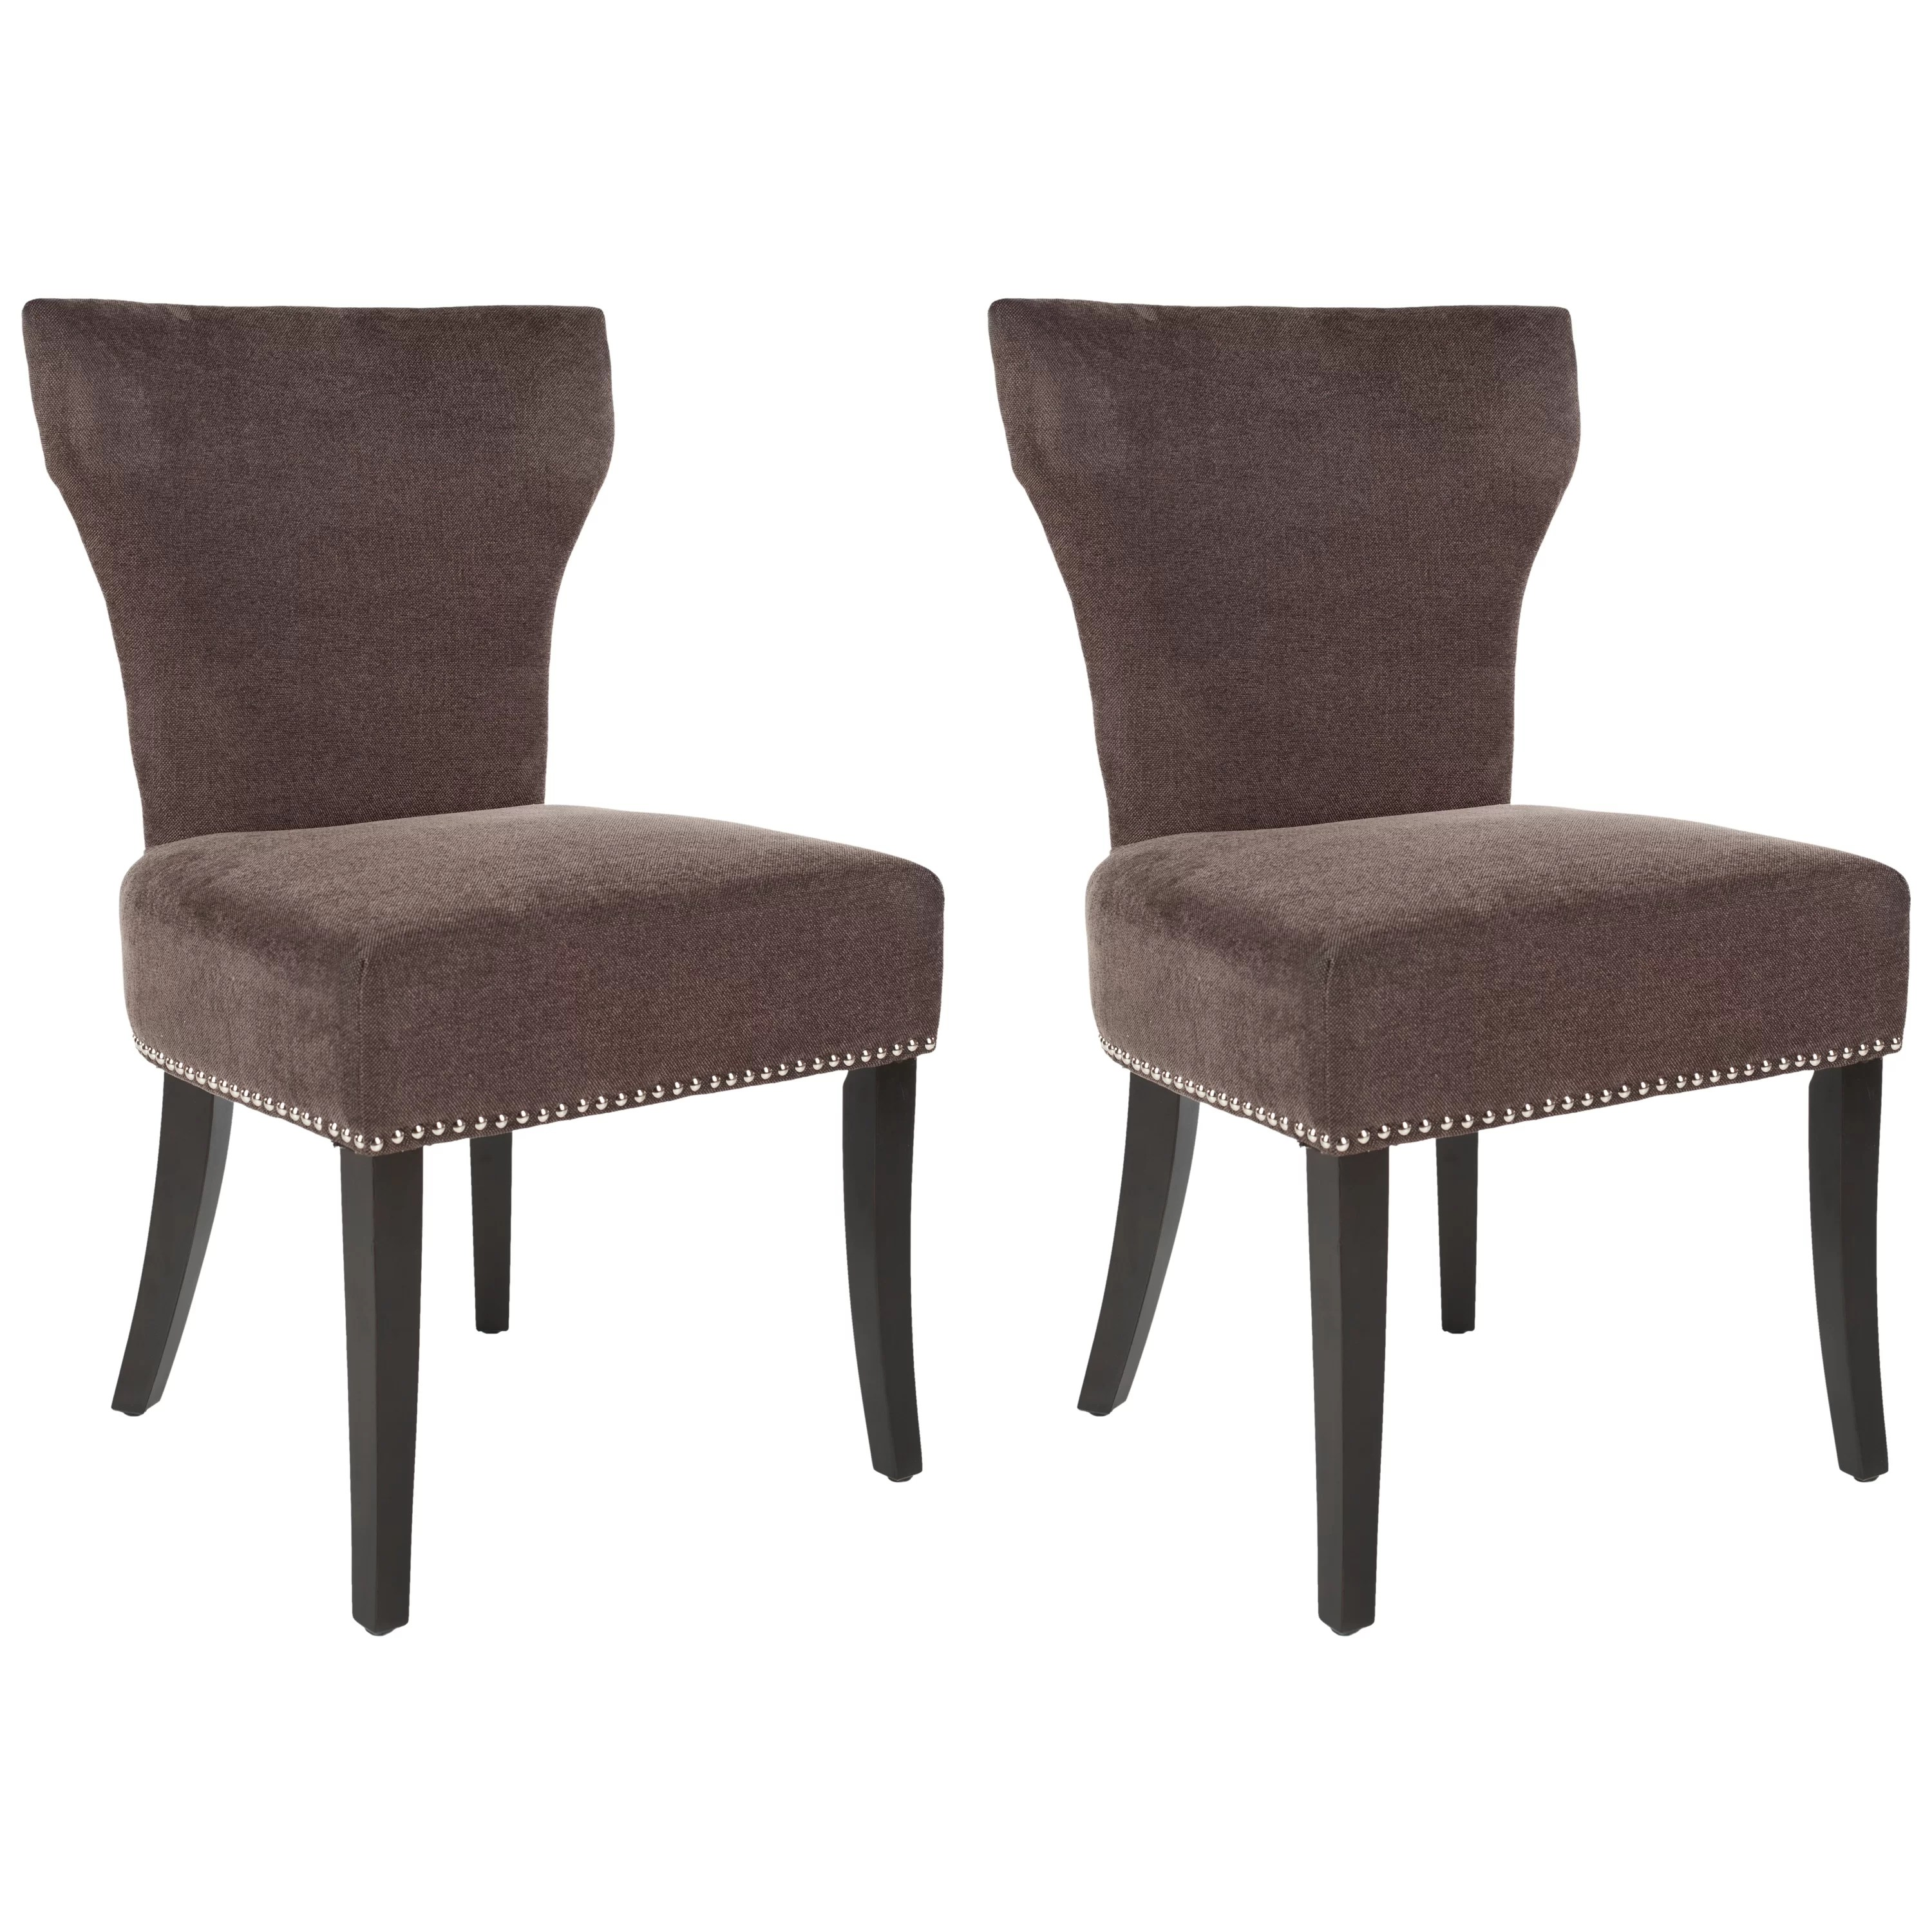 safavieh dining chairs clear plastic chair covers maria side and reviews wayfair